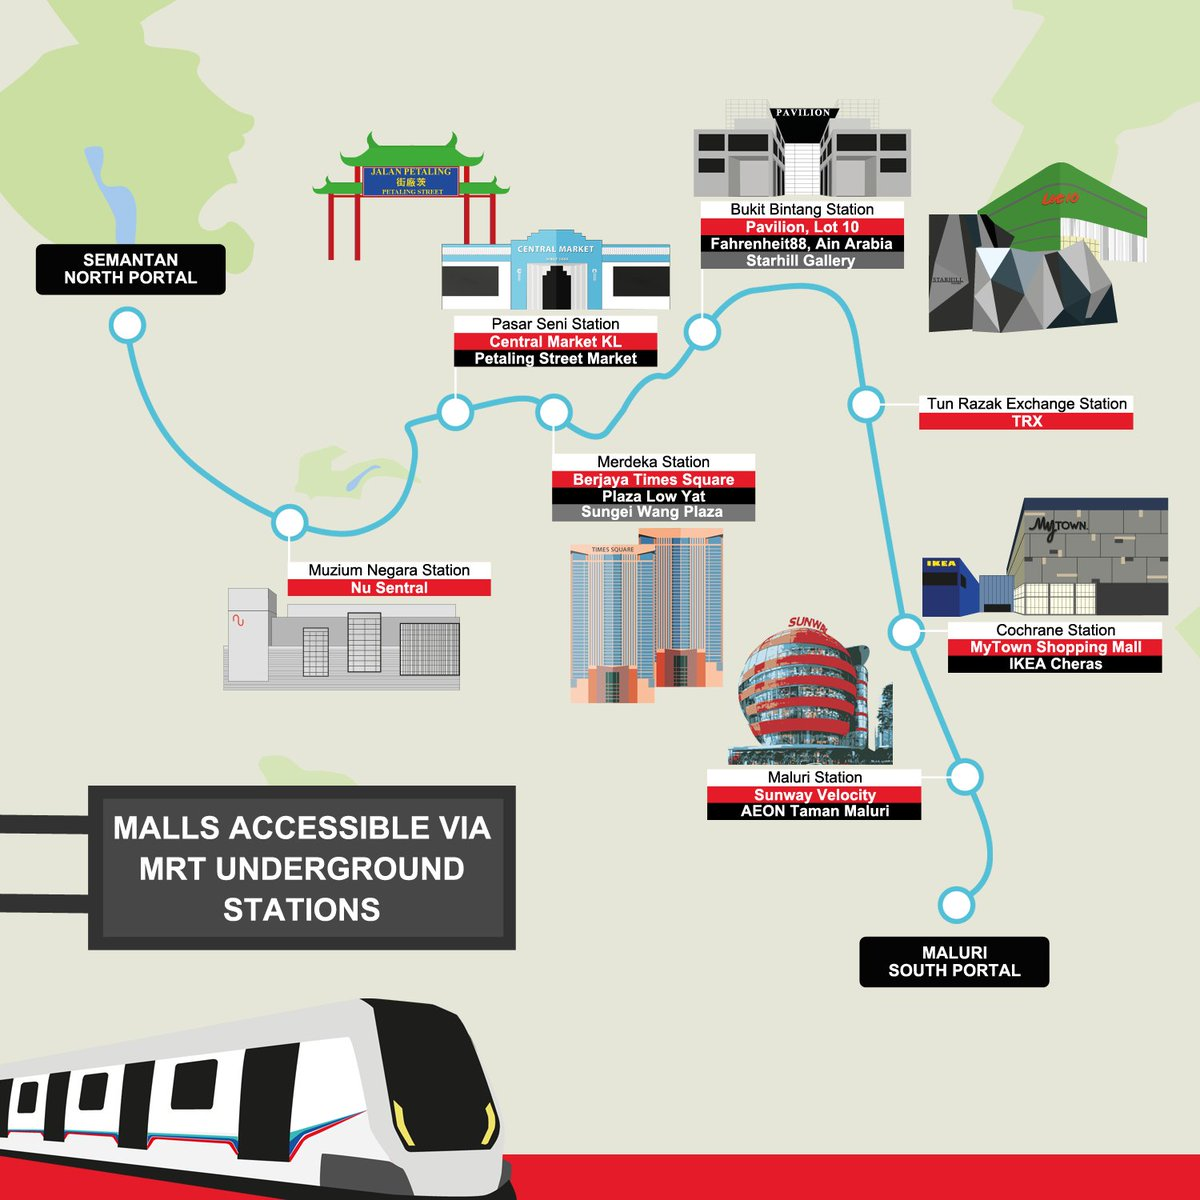 various malls accessible via mrt